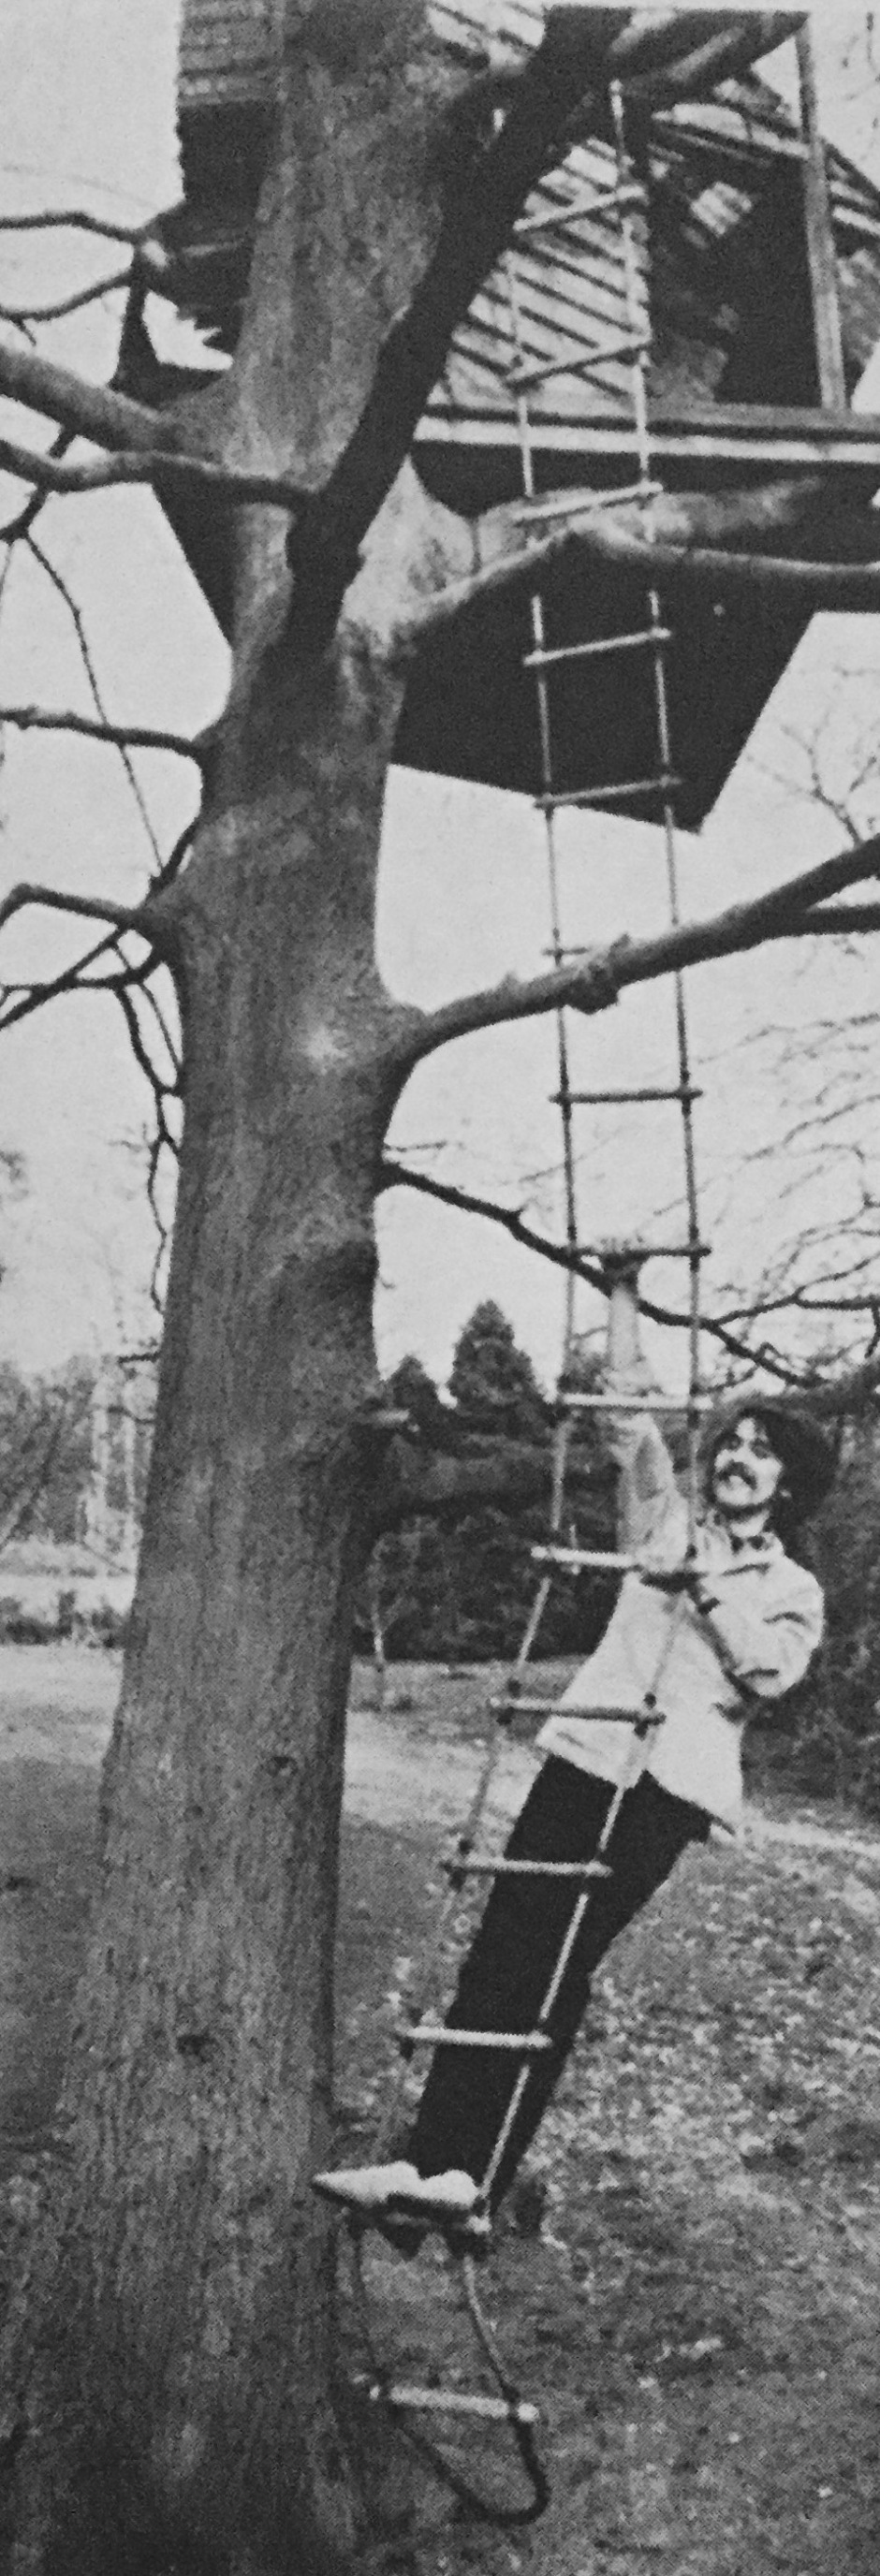 At Ringo's home, the Beatles social centre, George climbs up to the tree house where Ringo likes to sit and think.